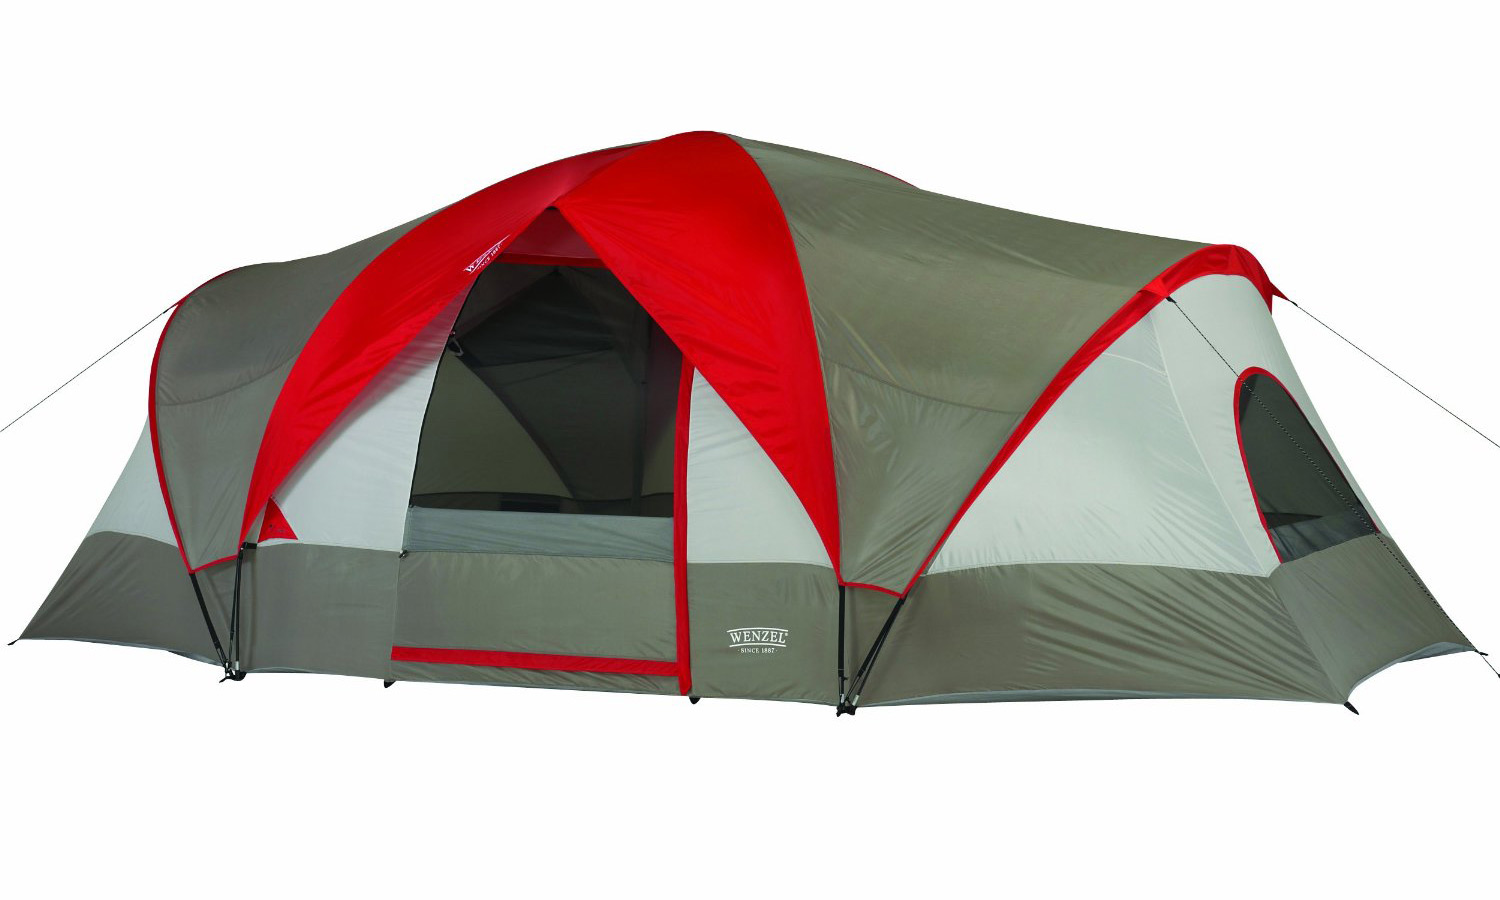 sc 1 st  Tent Buying Guide & 5 of the Best 10 Person Tent Reviews For 2018